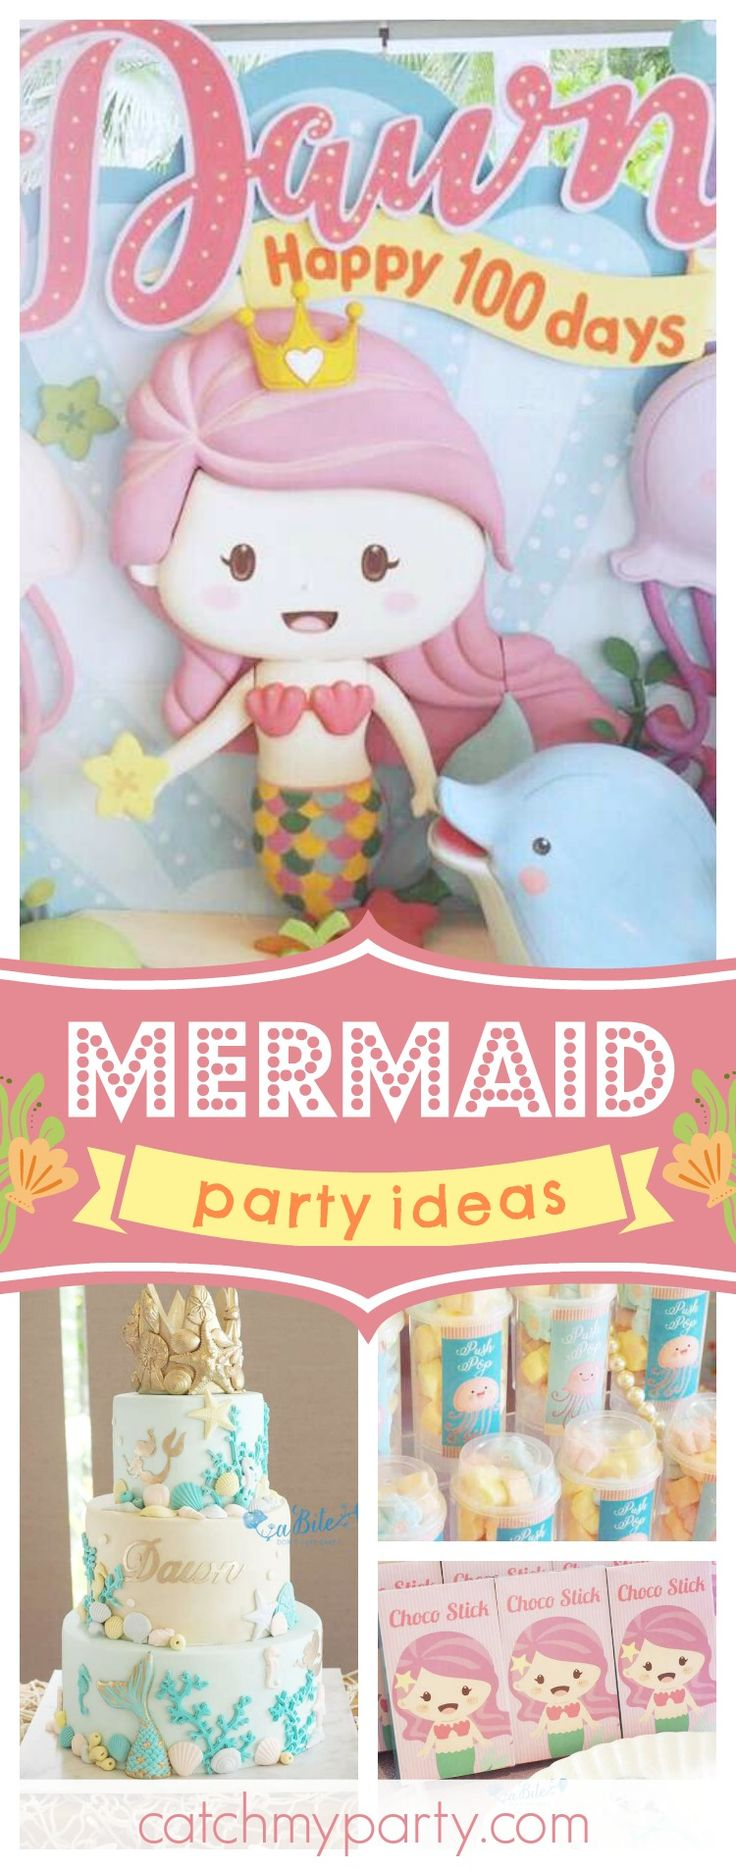 Don't miss this wonderful Mermaid birthday party! The birthday cake is stunning!! See more party ideas and share yours at CatchMyParty.com  #mermaid #underthesea #girlbirthday